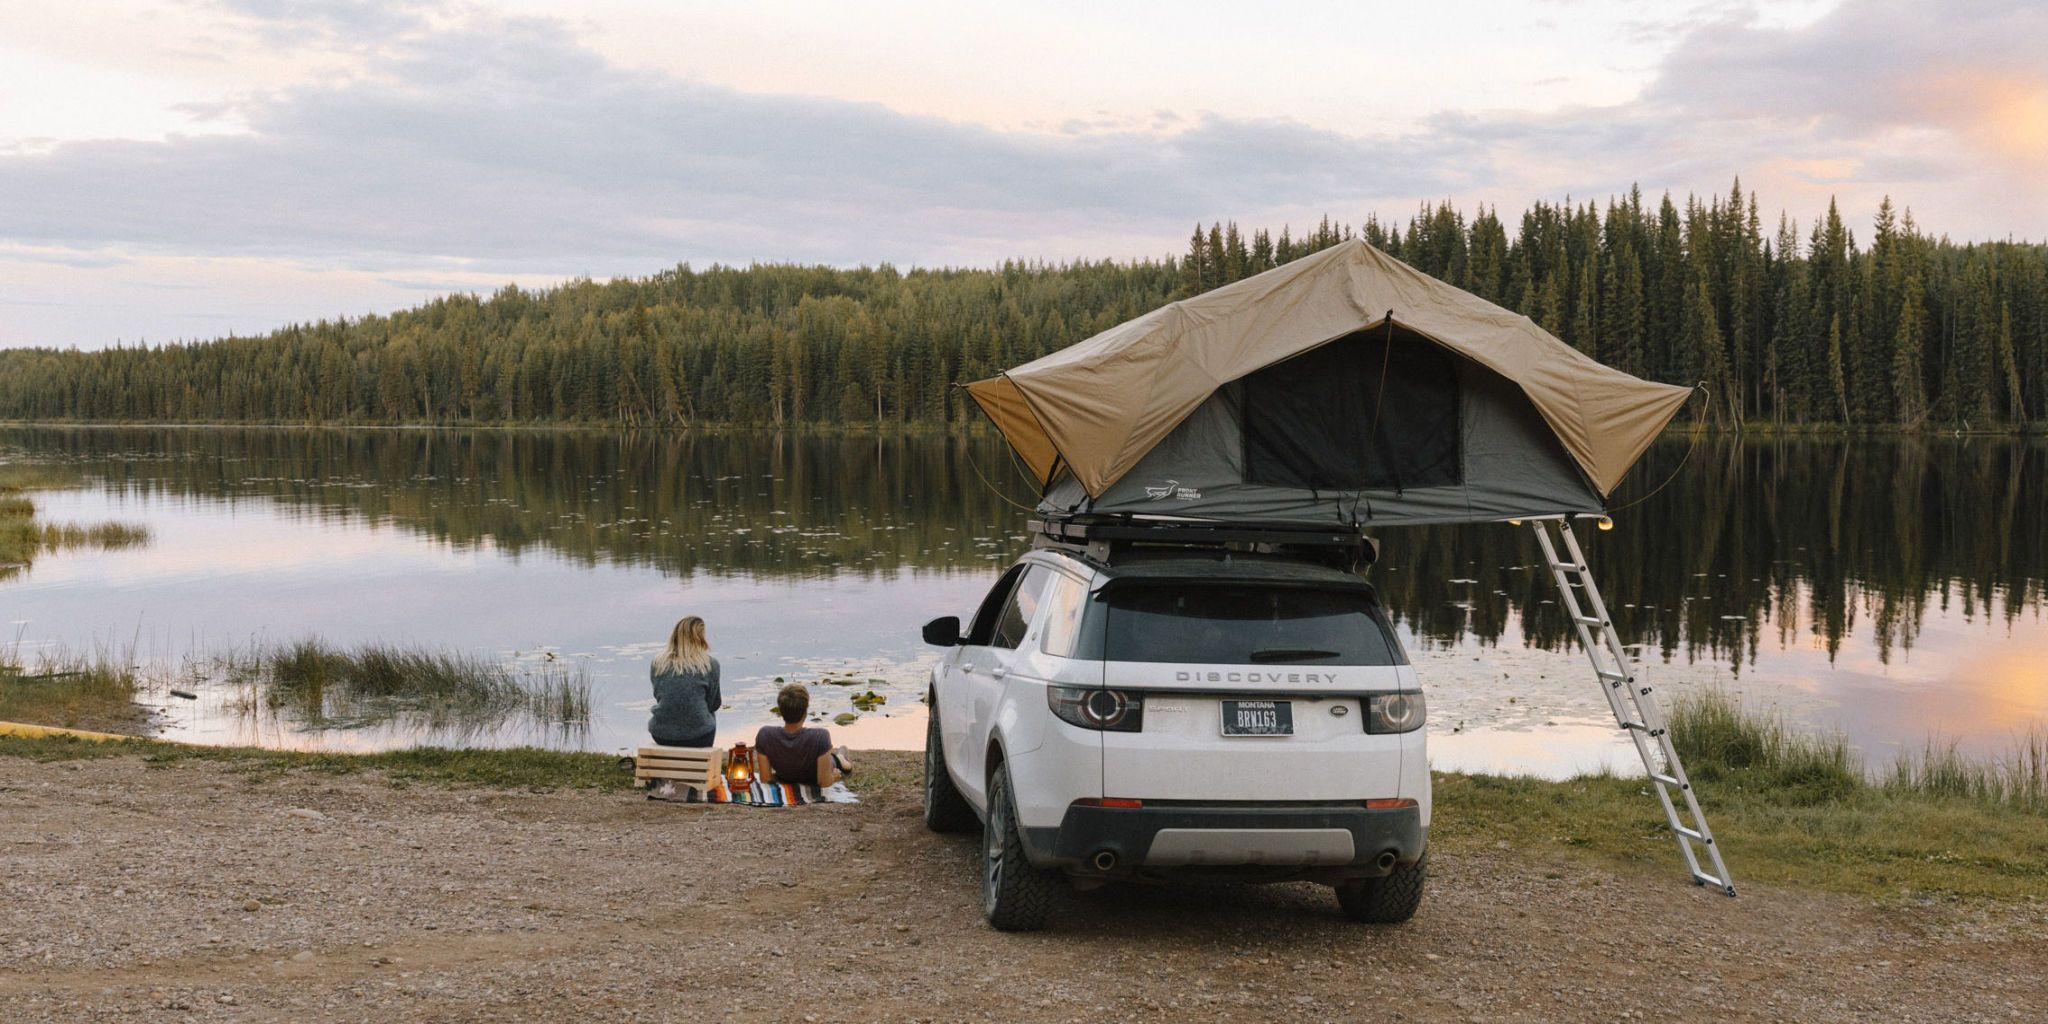 Roof top tents assemble in seconds which allow you more time around the c&fire and less time fiddling with tent poles. : suburban tent - memphite.com